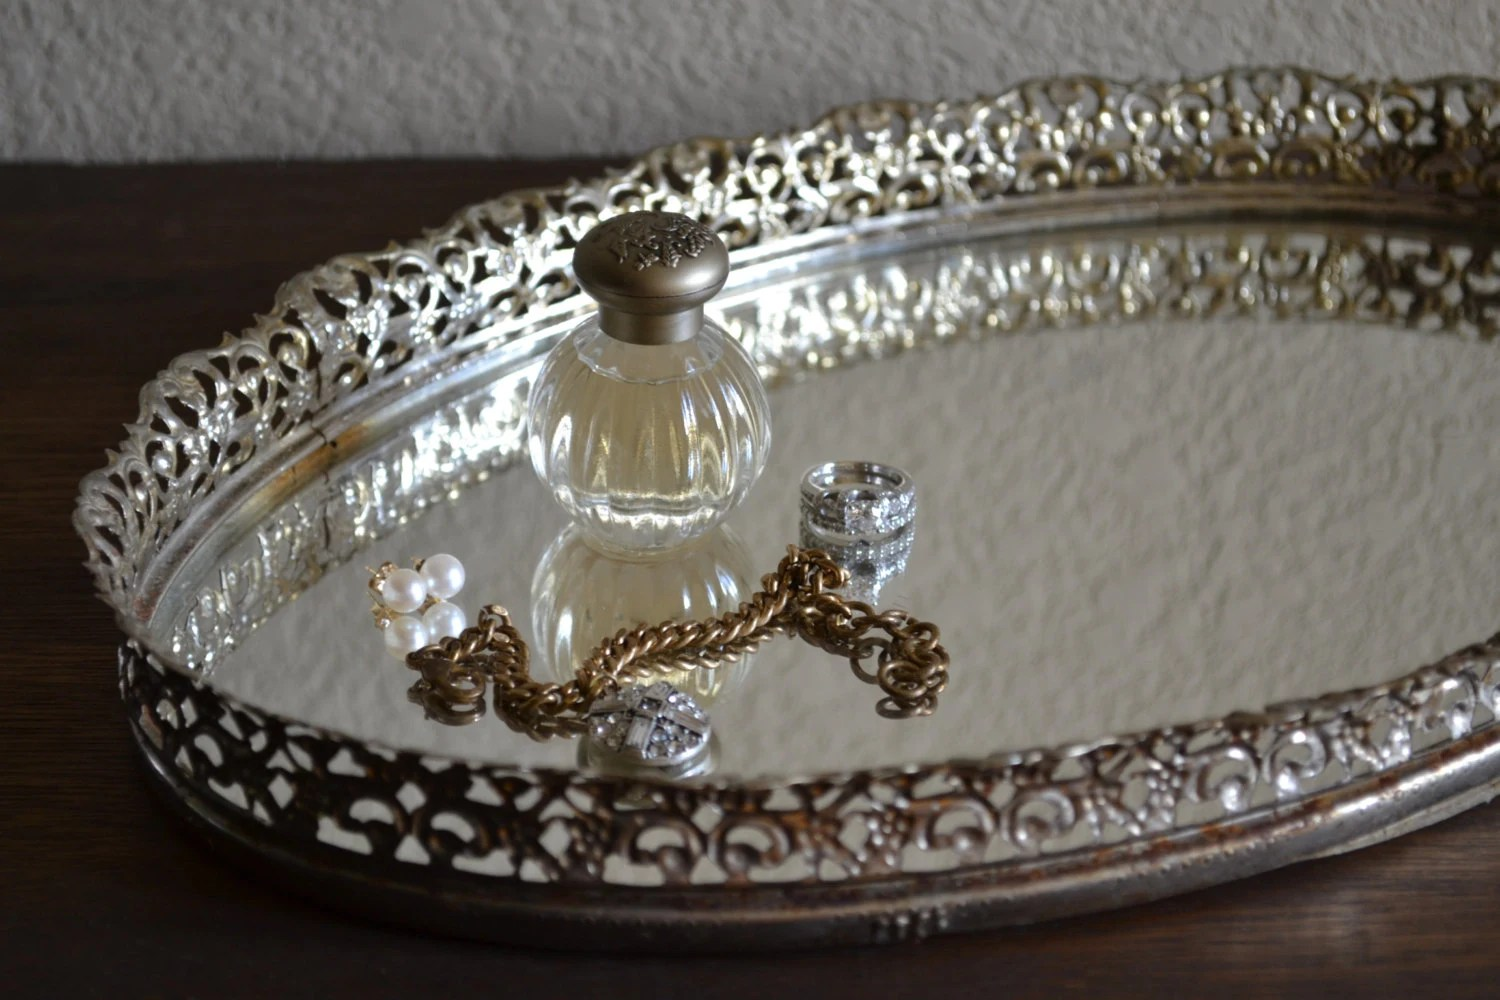 Vintage Oval Vanity Tray / Ornate Brass Silver Tone Metal With